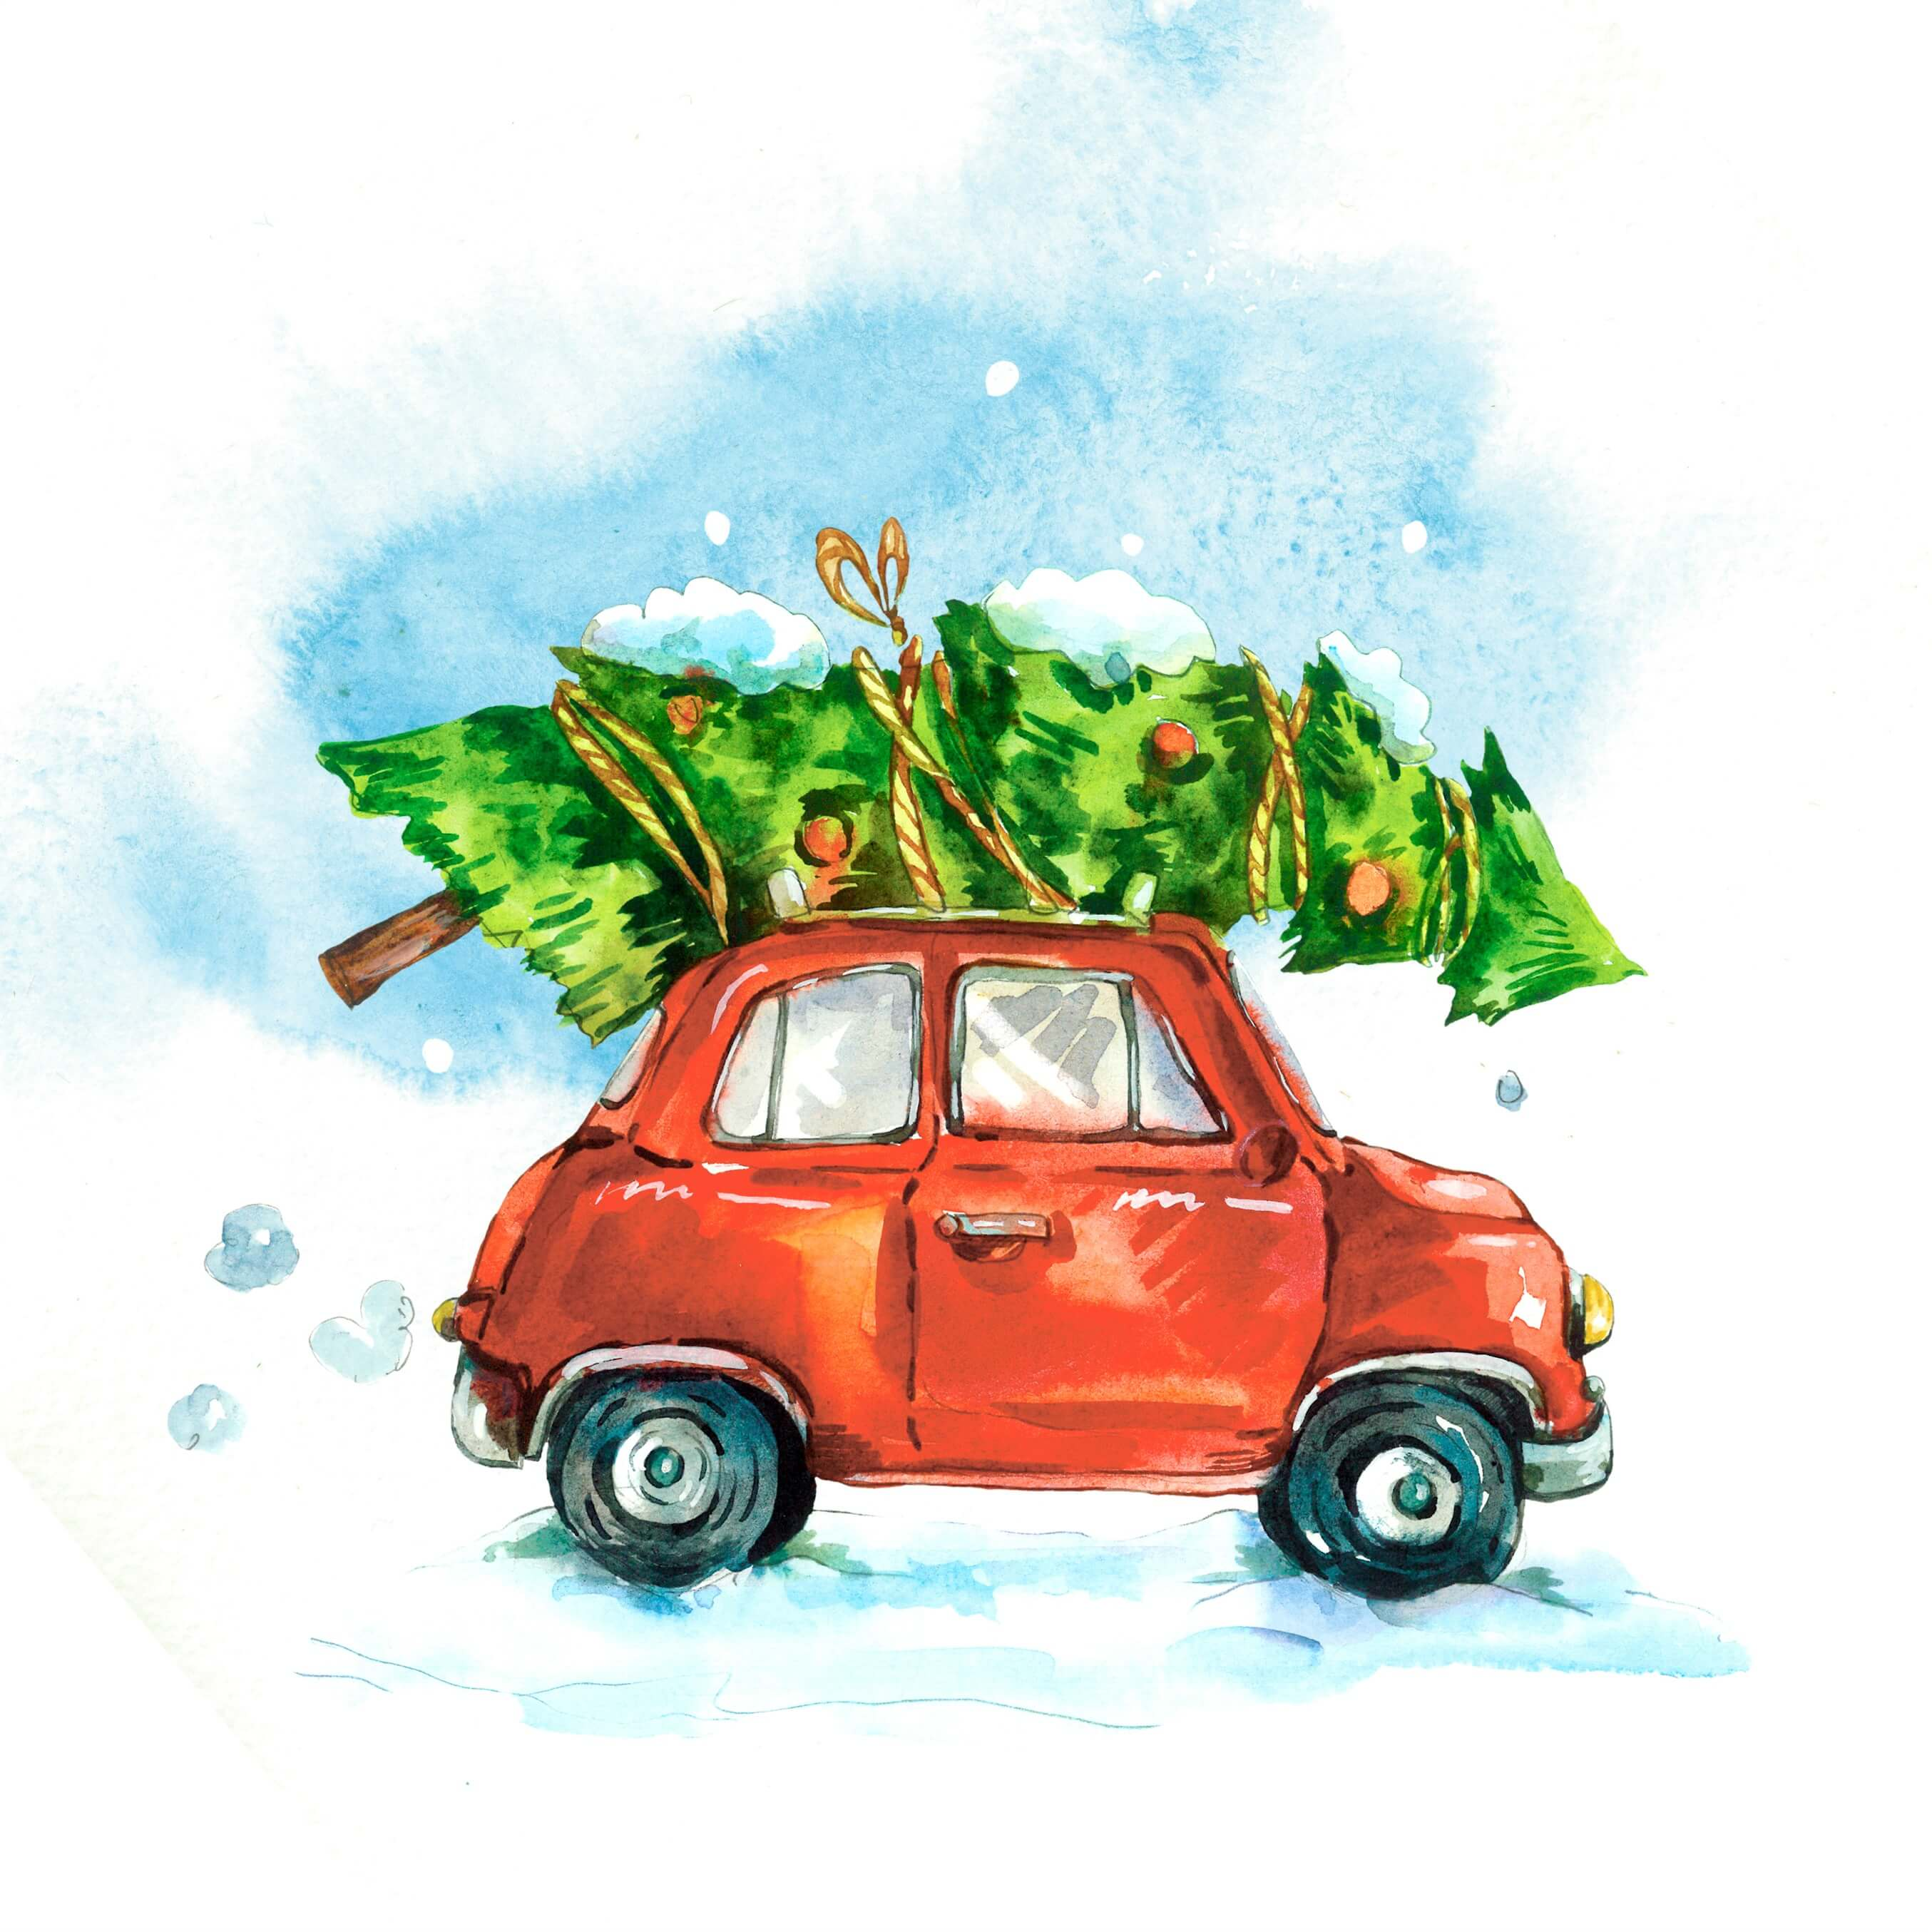 Christmas shopping list - cartoon of a small red car with an enormous Christmas tree on the roof